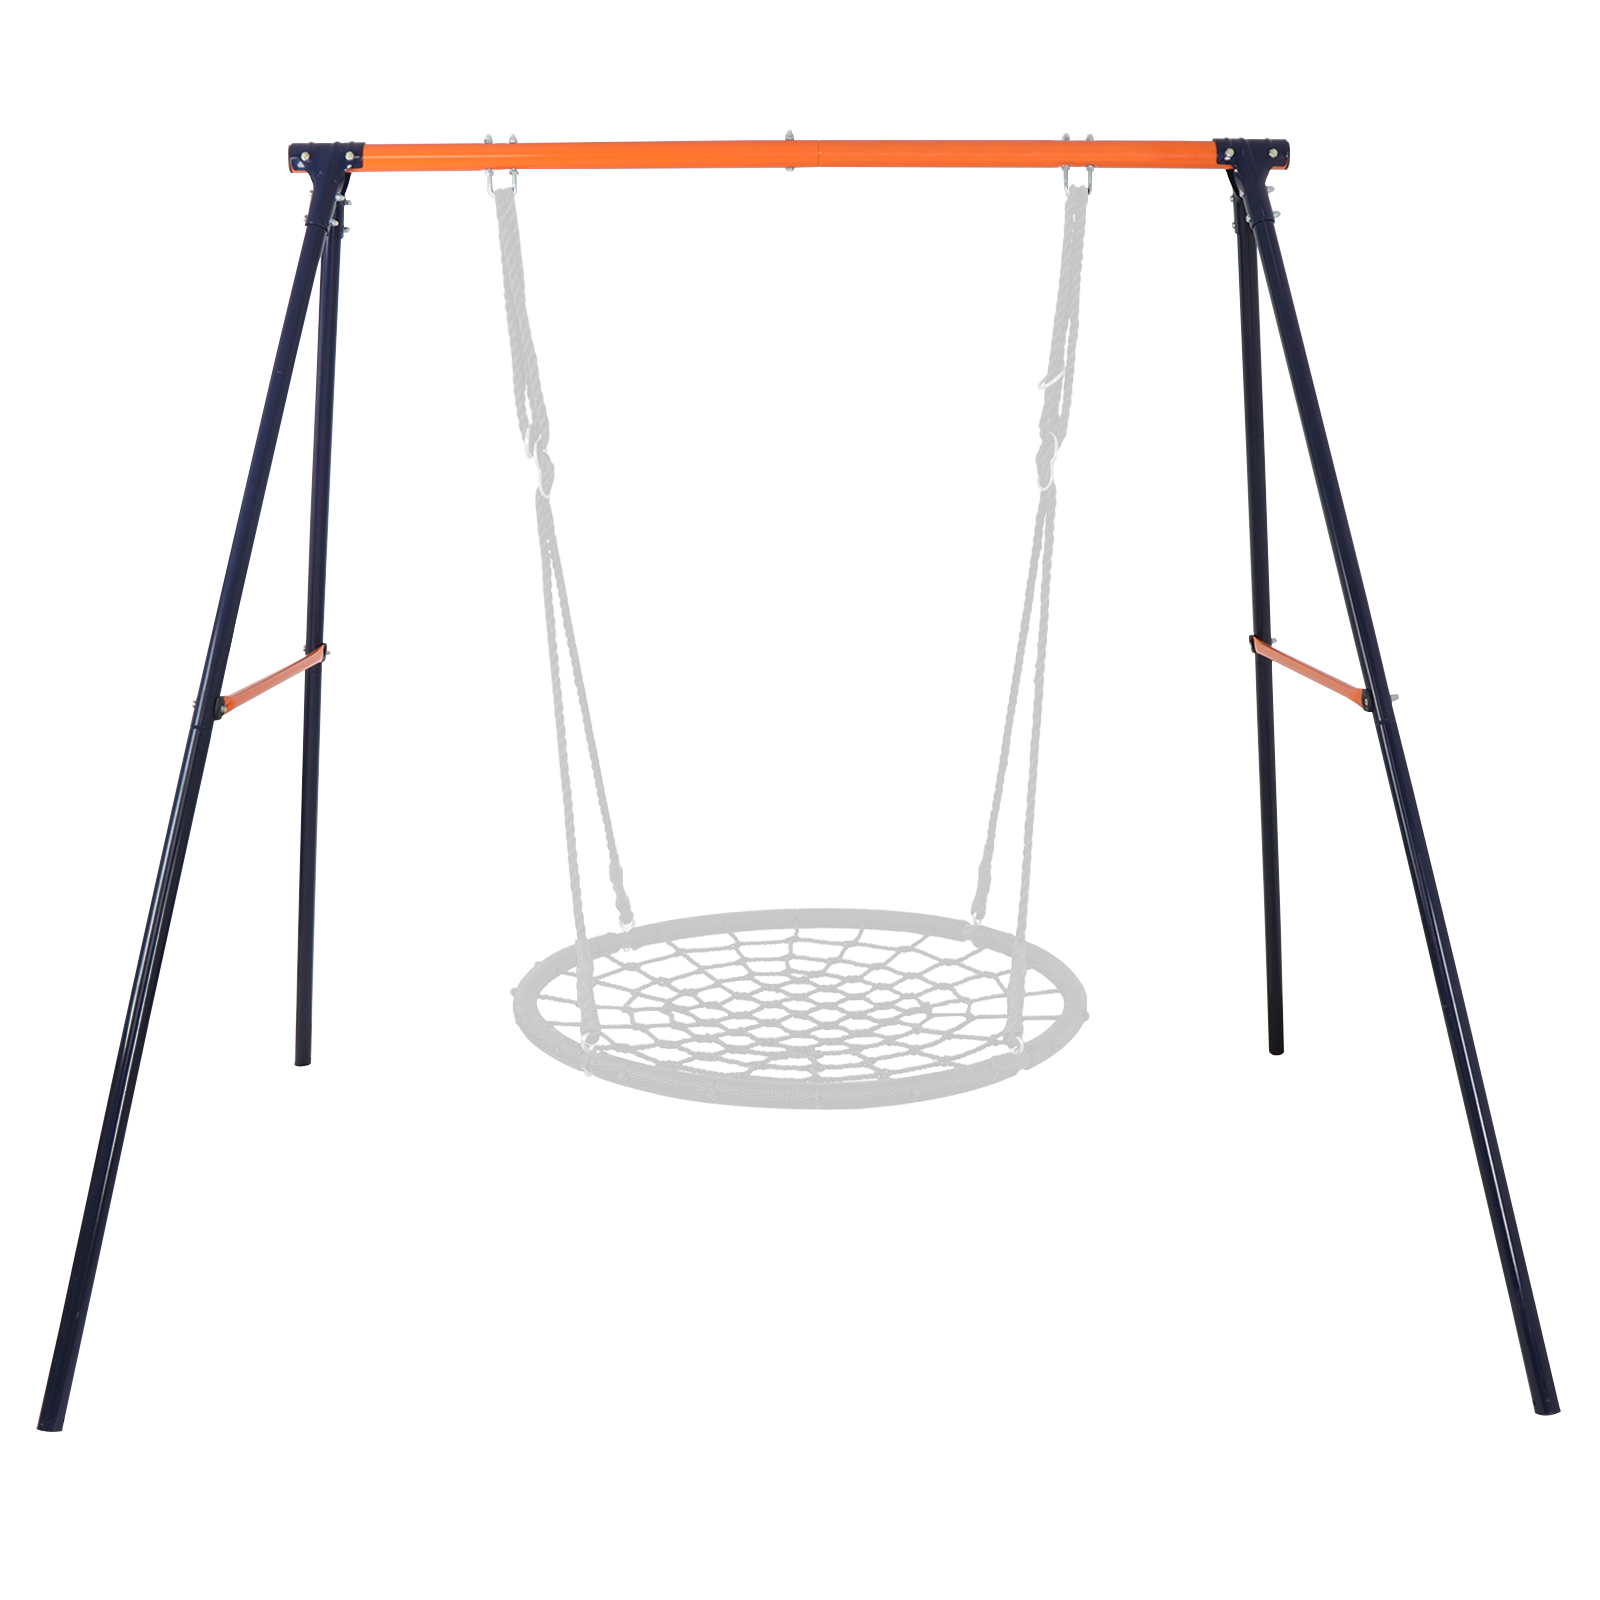 Zeny Web Tree Swing Frame Comes Assembled With Durable And Adjustable Ropes